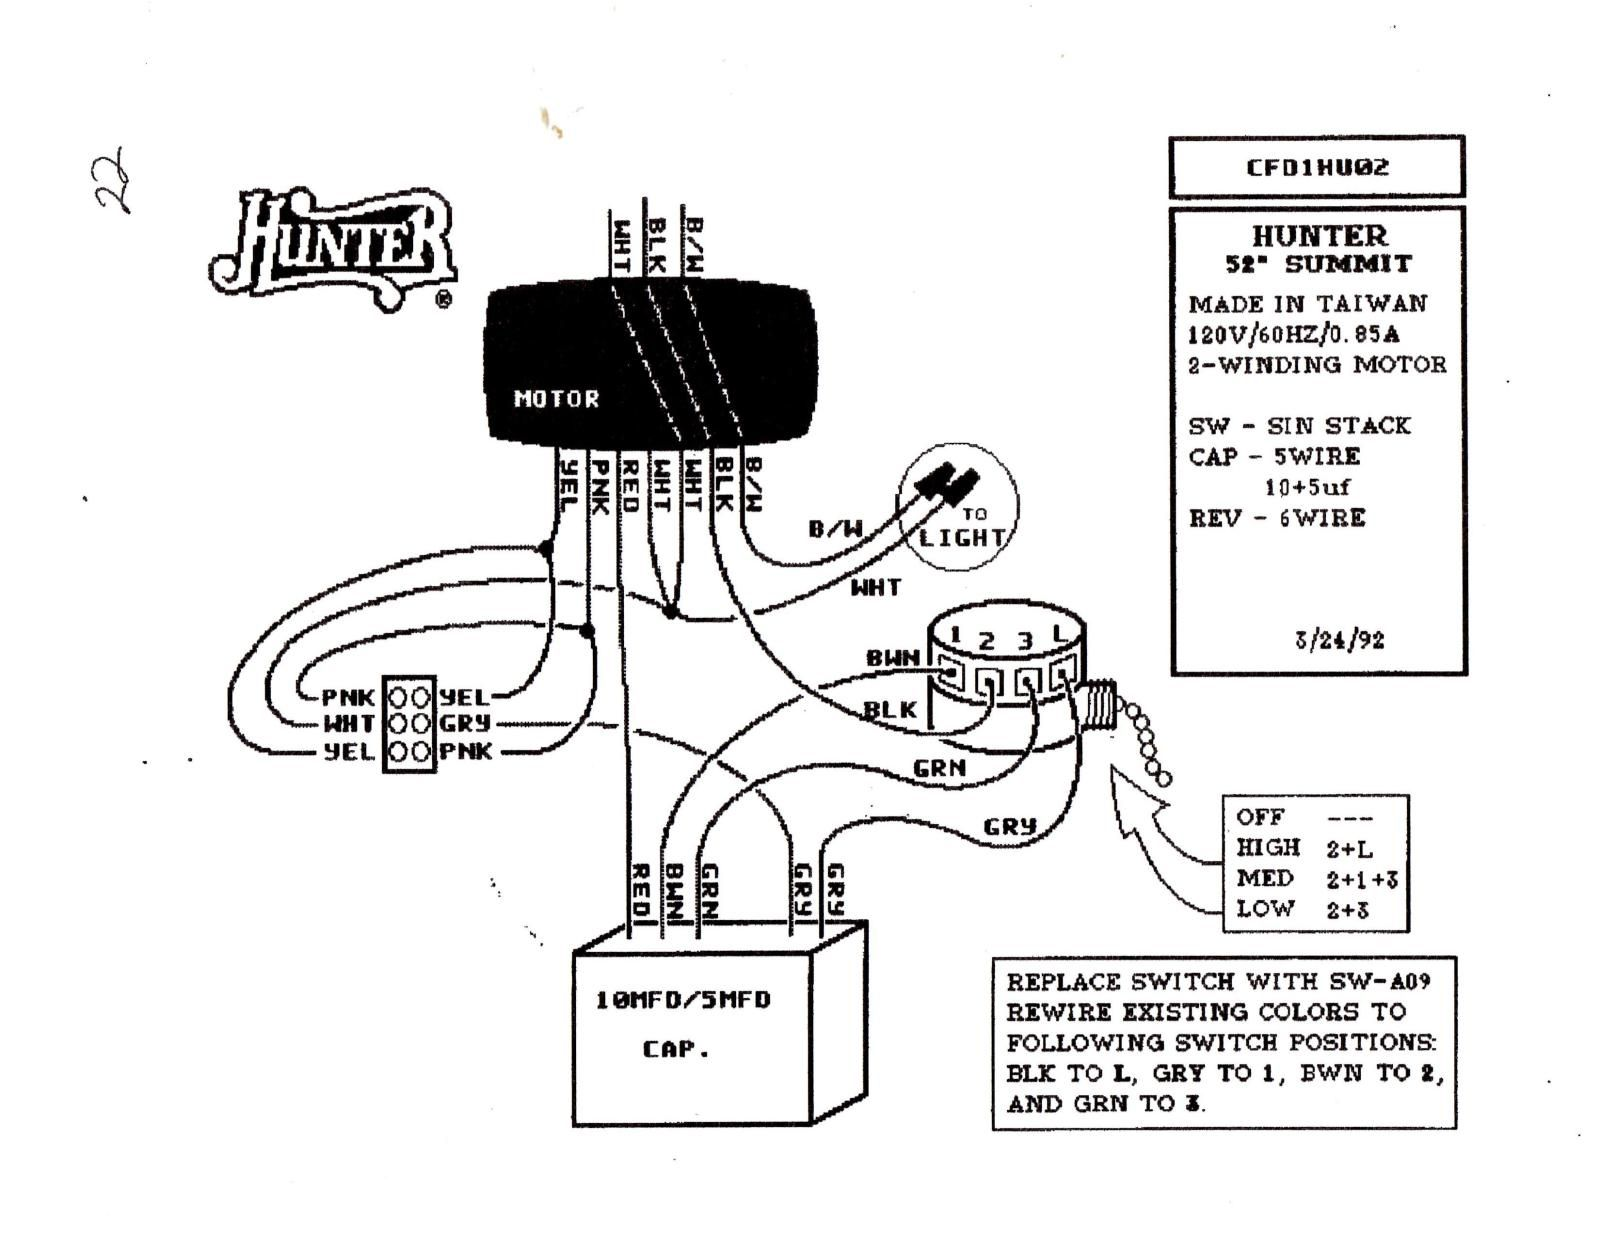 Hunter Ceiling Fan Speed Switch Wiring Diagram | Hunter ceiling fans, Ceiling  fan wiring, Ceiling fan pull chainPinterest